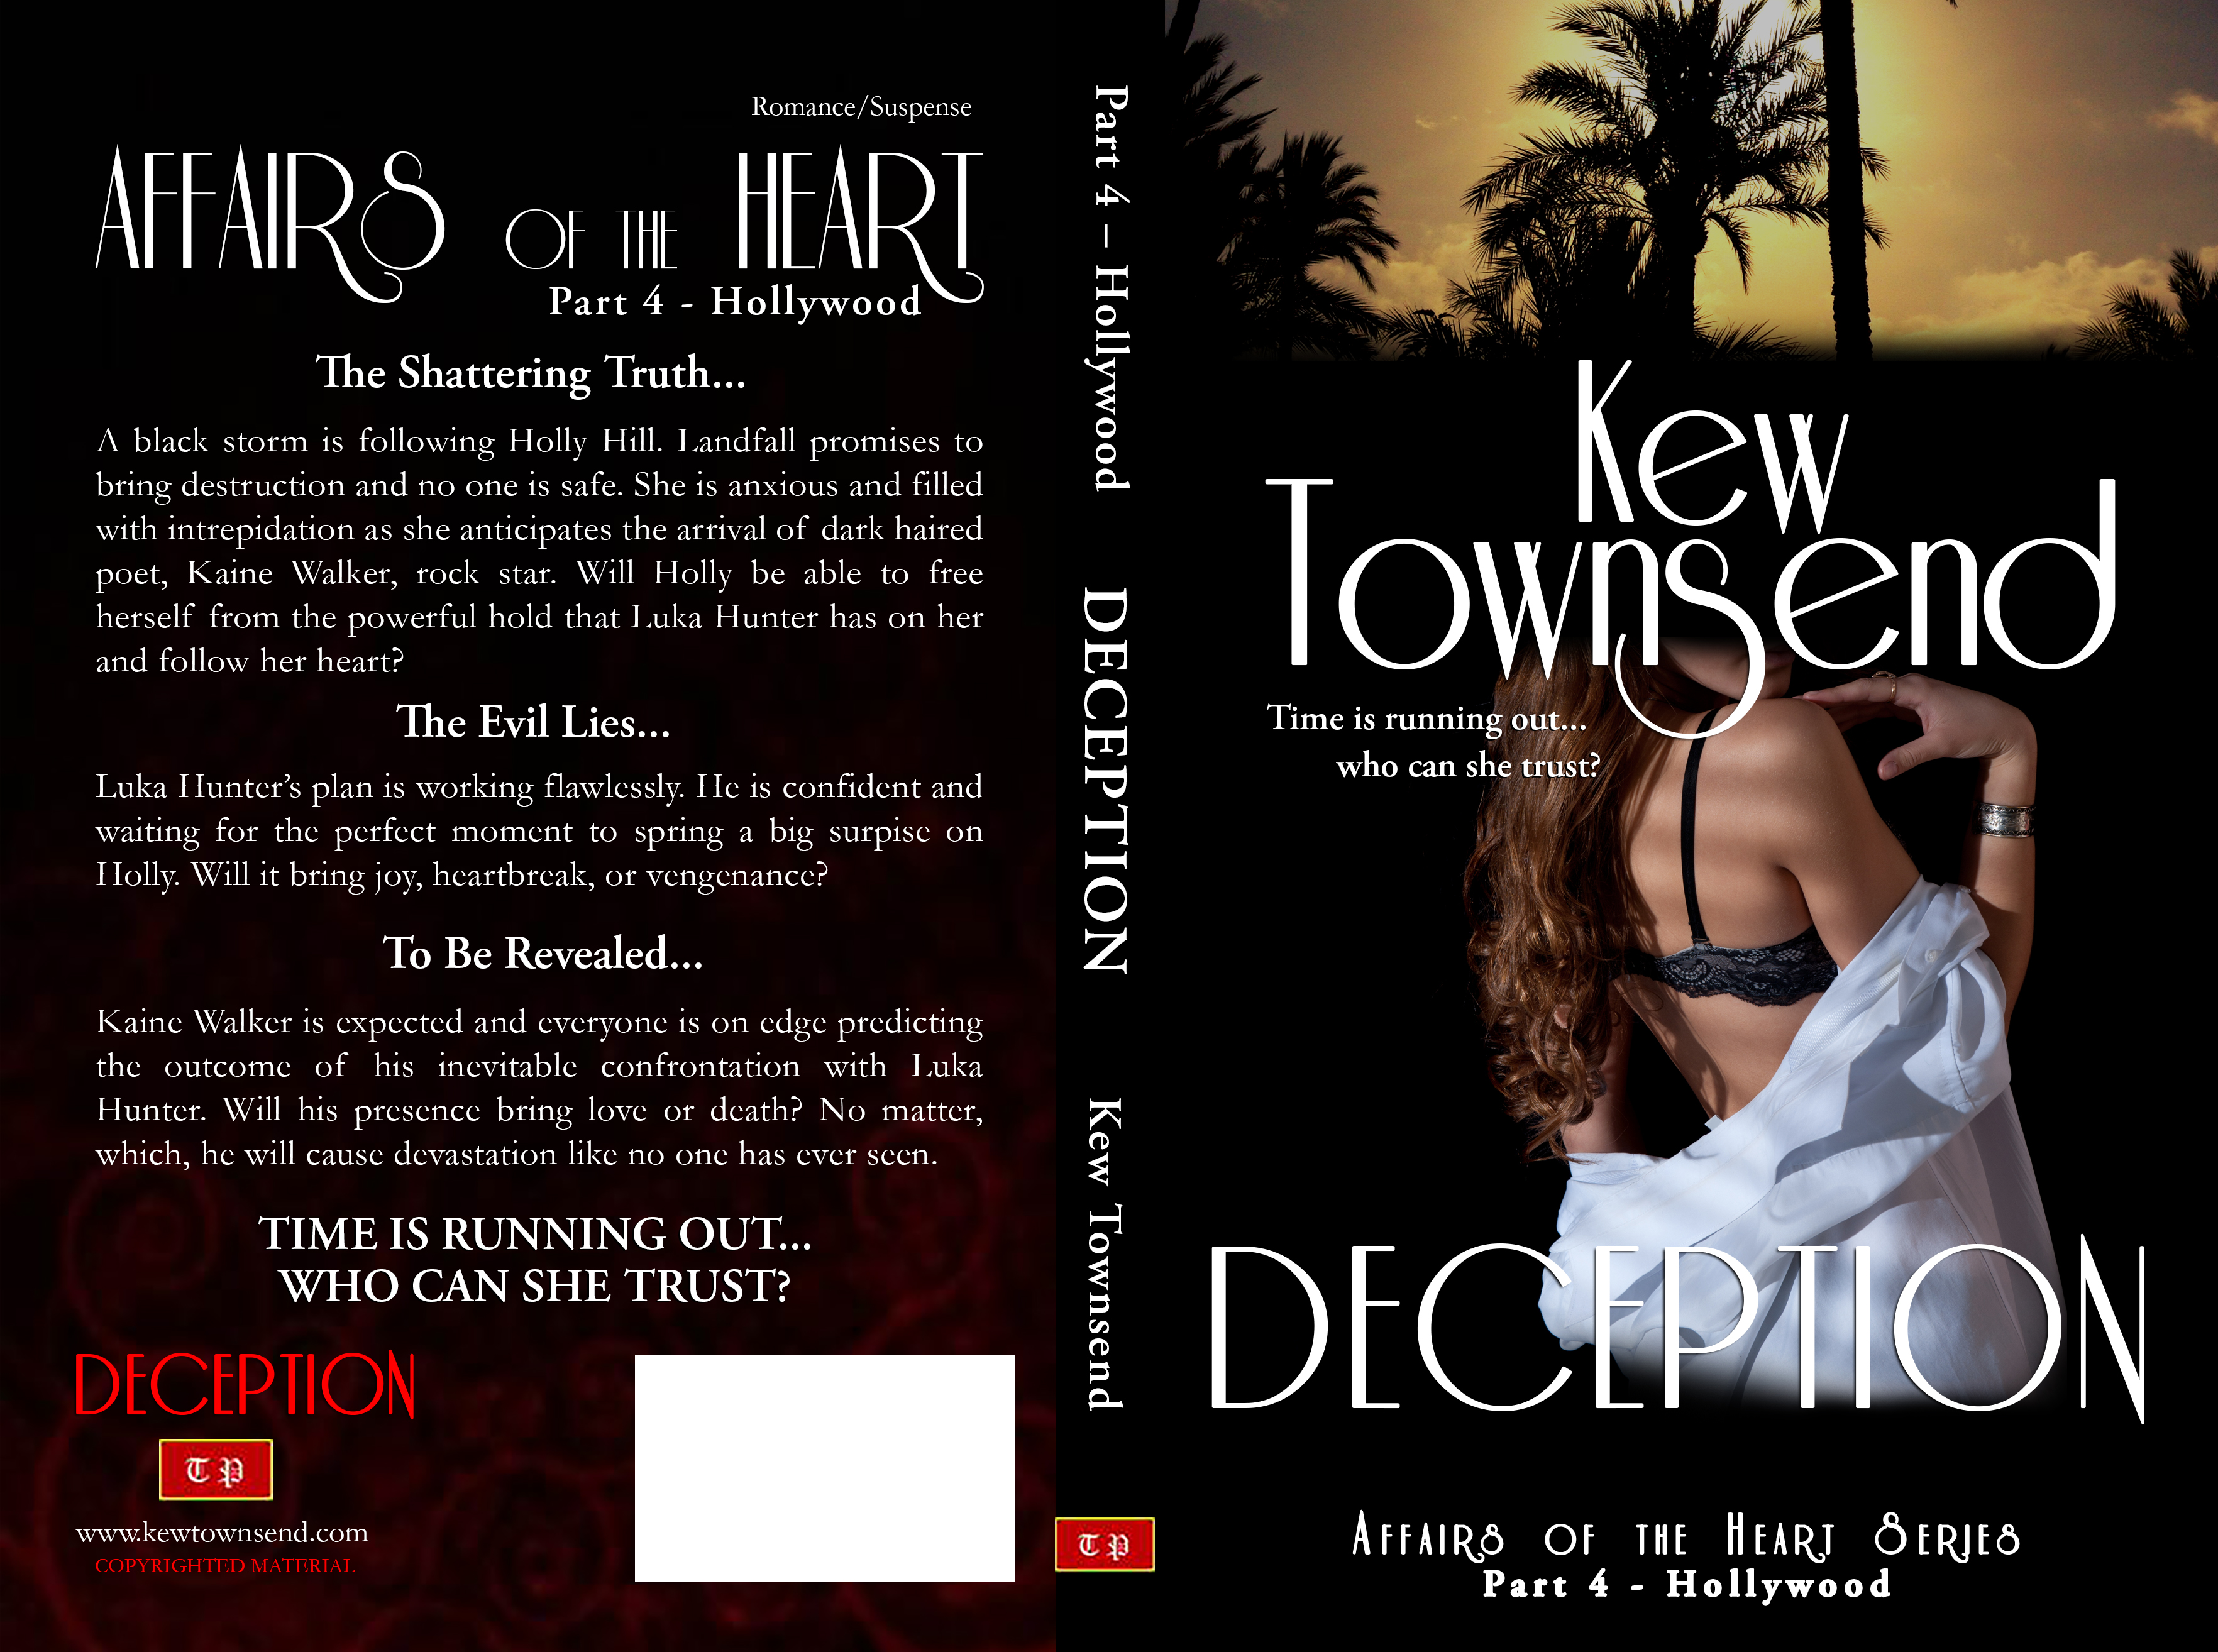 DECEPTION Print Cover by Kew Townsend